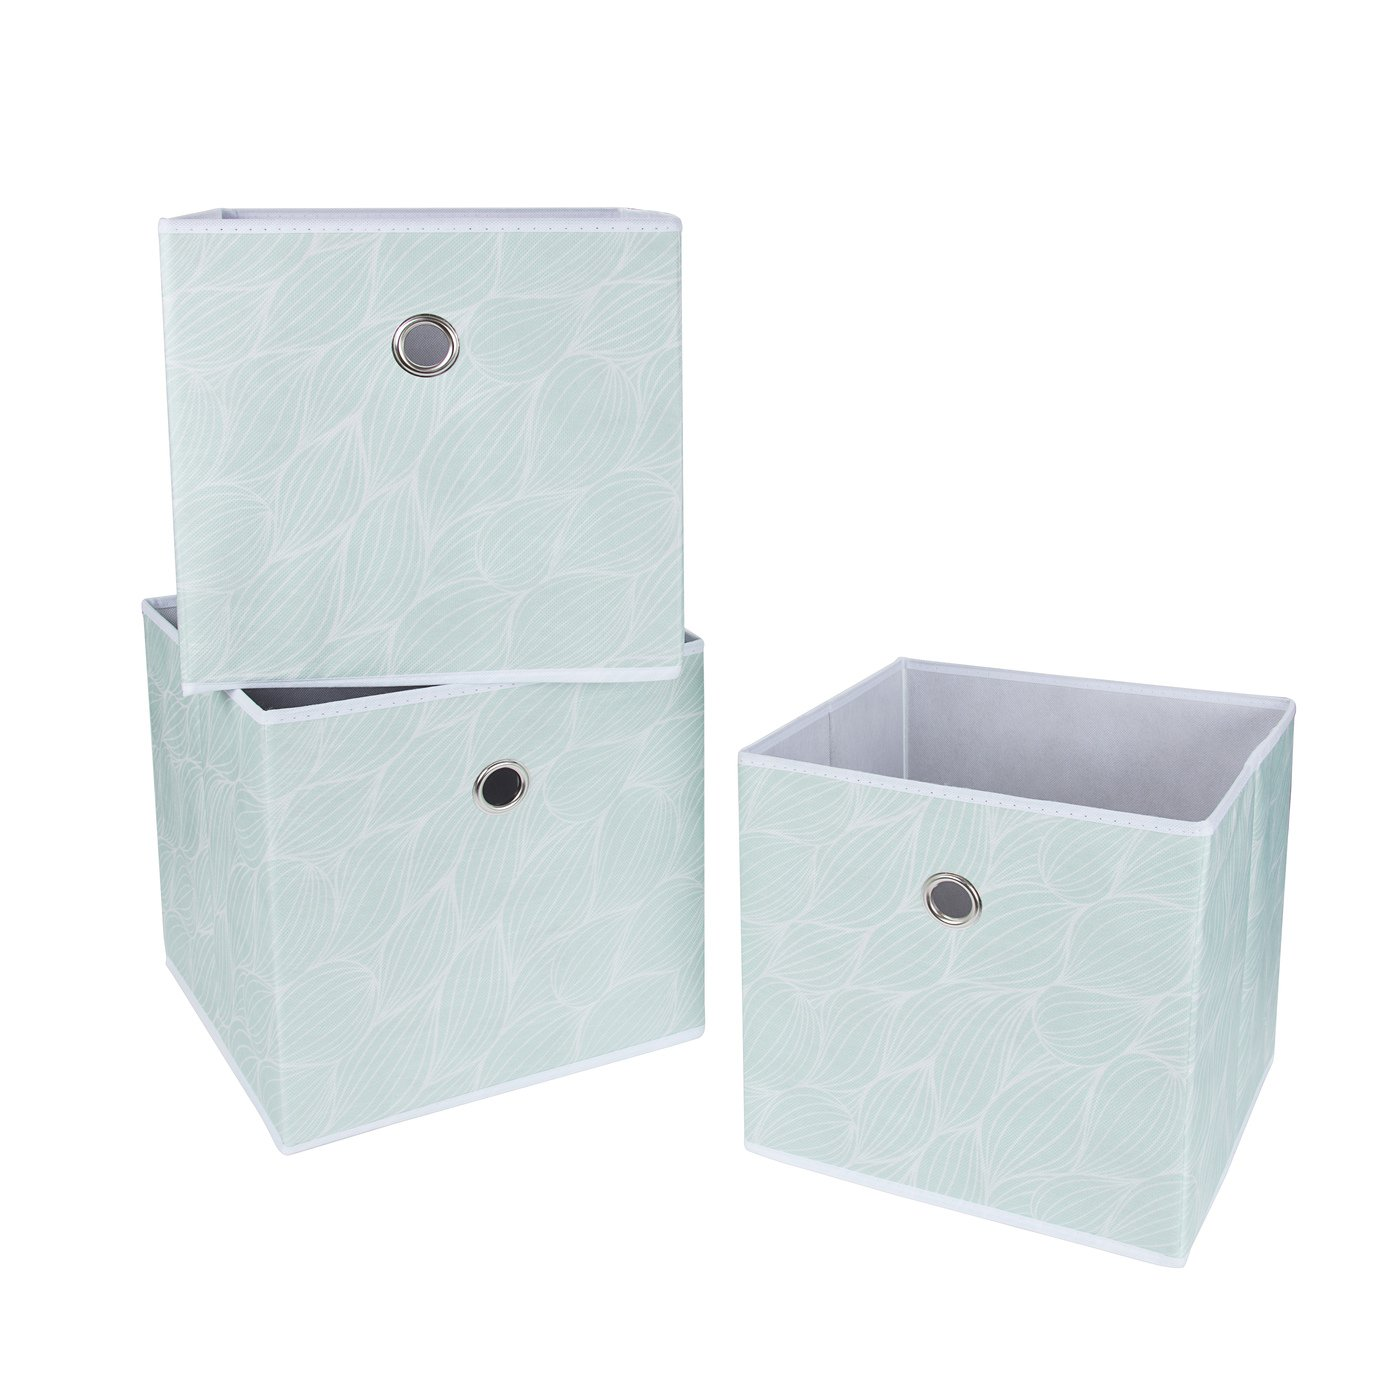 SbS Collapsible Foldable Fabric Storage Boxes, Cubes, Bins, Baskets. Mint Green Leaf pattern (3 Pack). Each Storage Bin Measures 11 inches on all sides